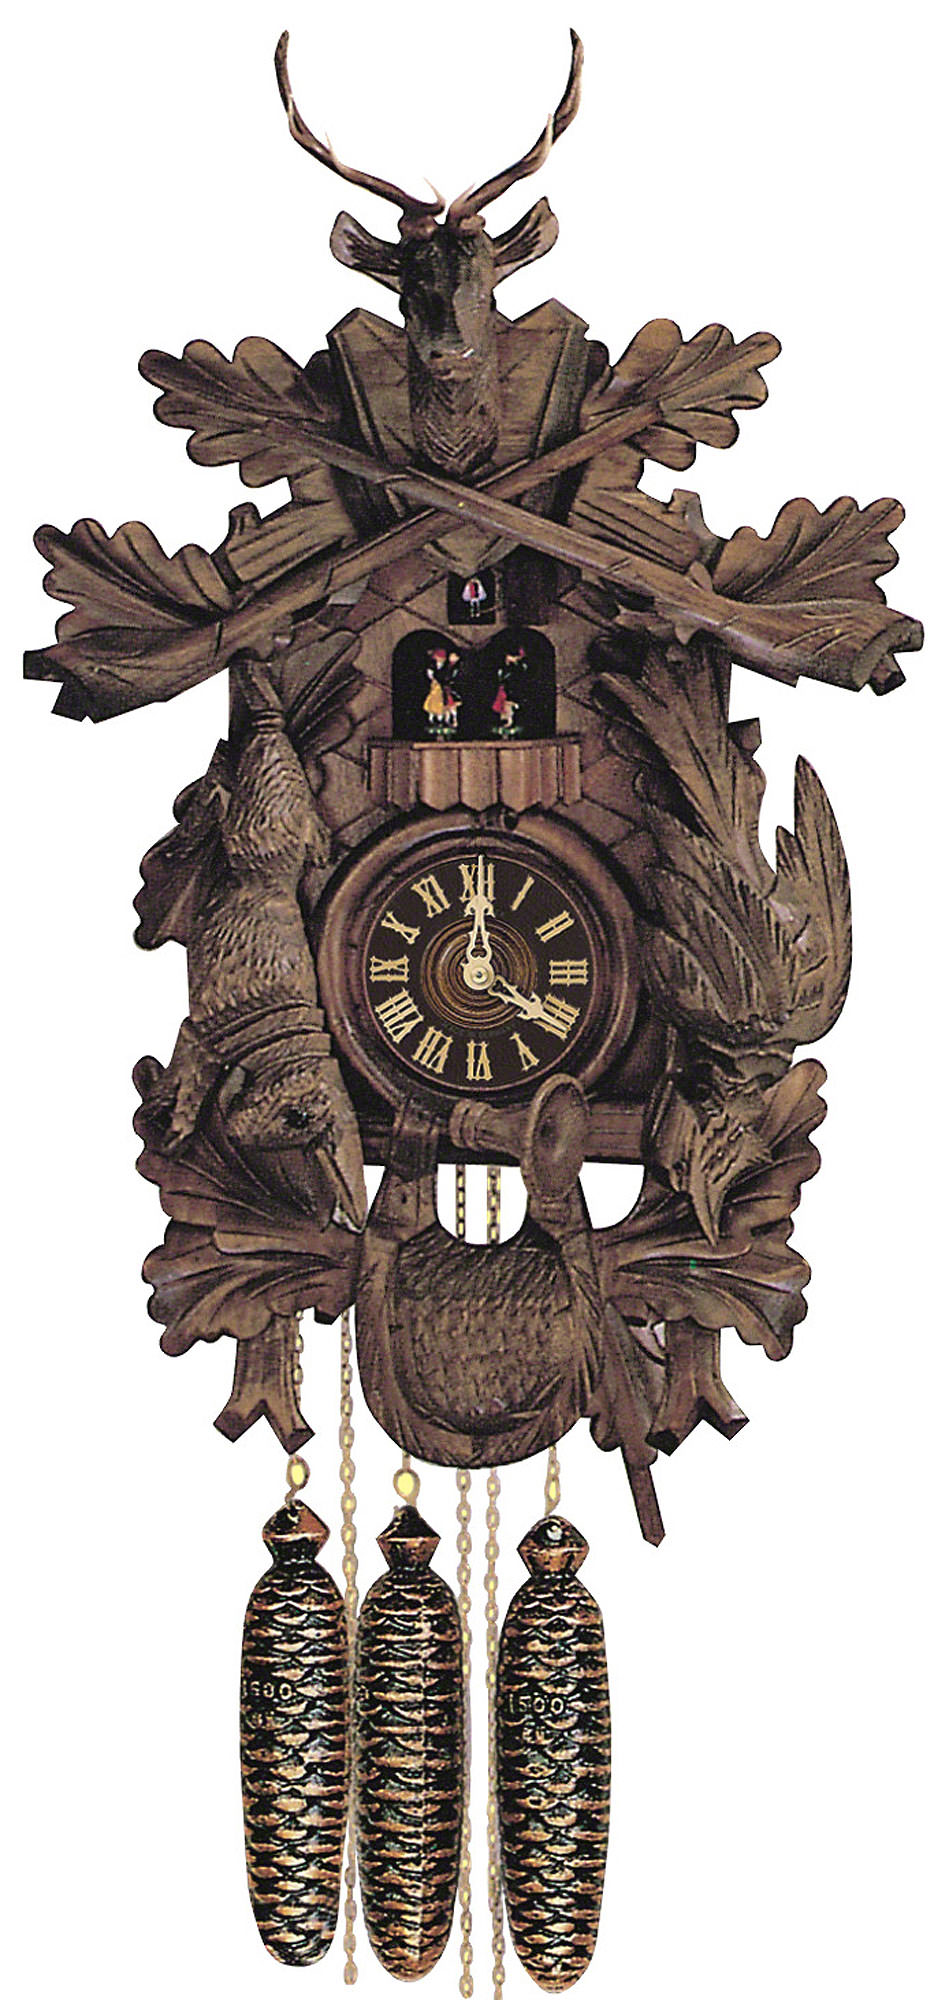 Cuckoo Clock 8 Day Movement Carved Style 60cm By Anton